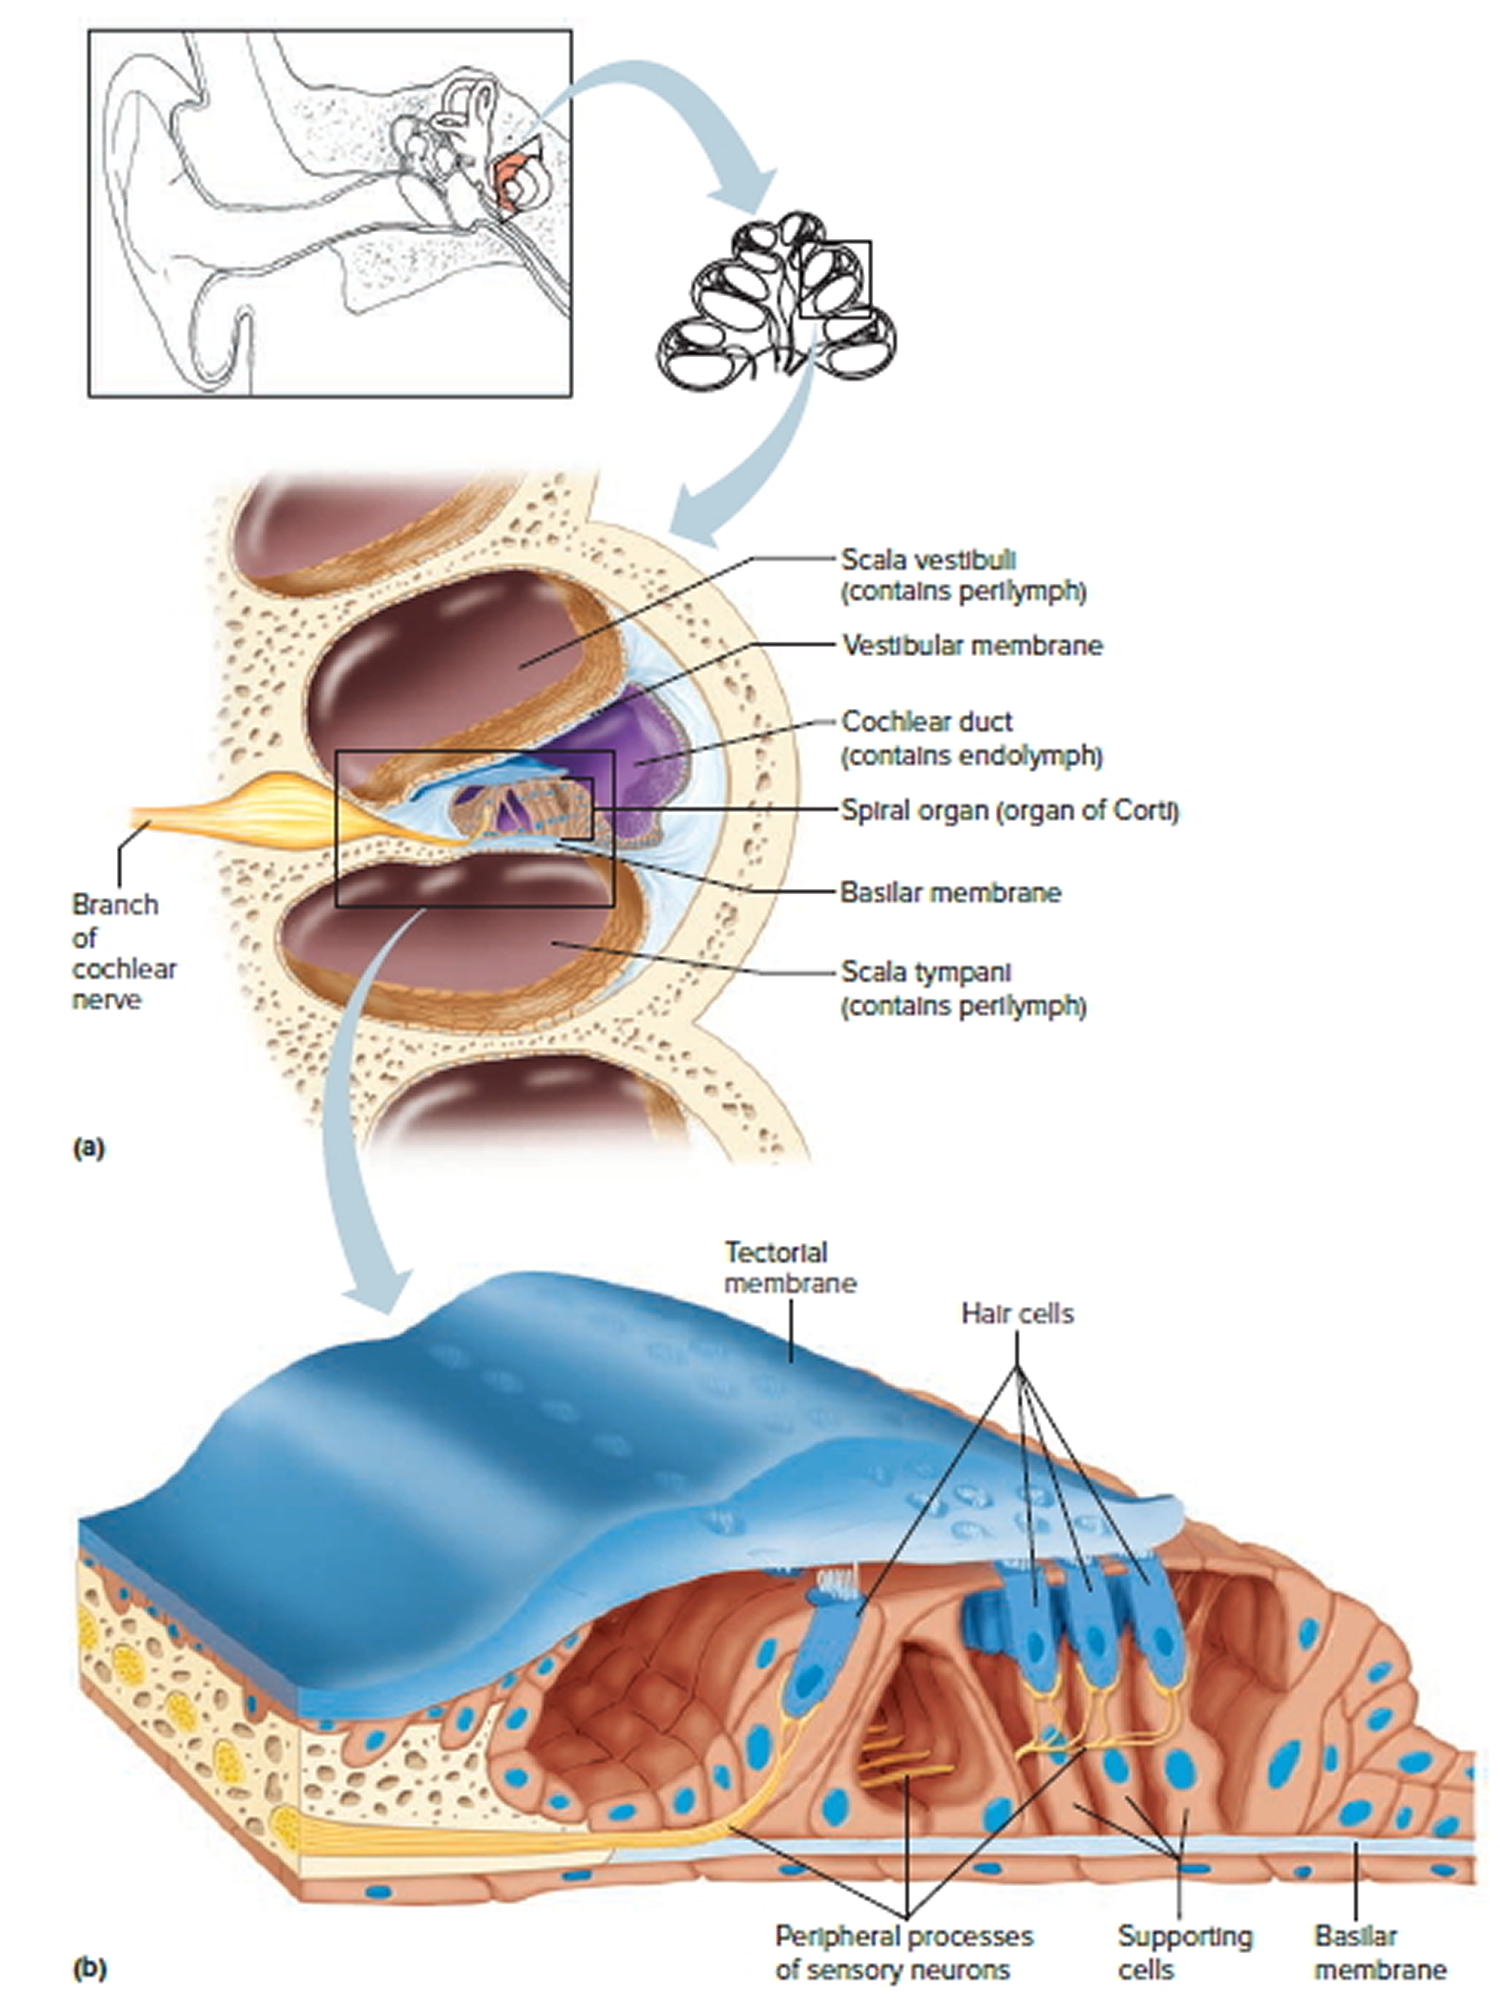 Human Ear Anatomy - Parts of Ear Structure, Diagram and ...